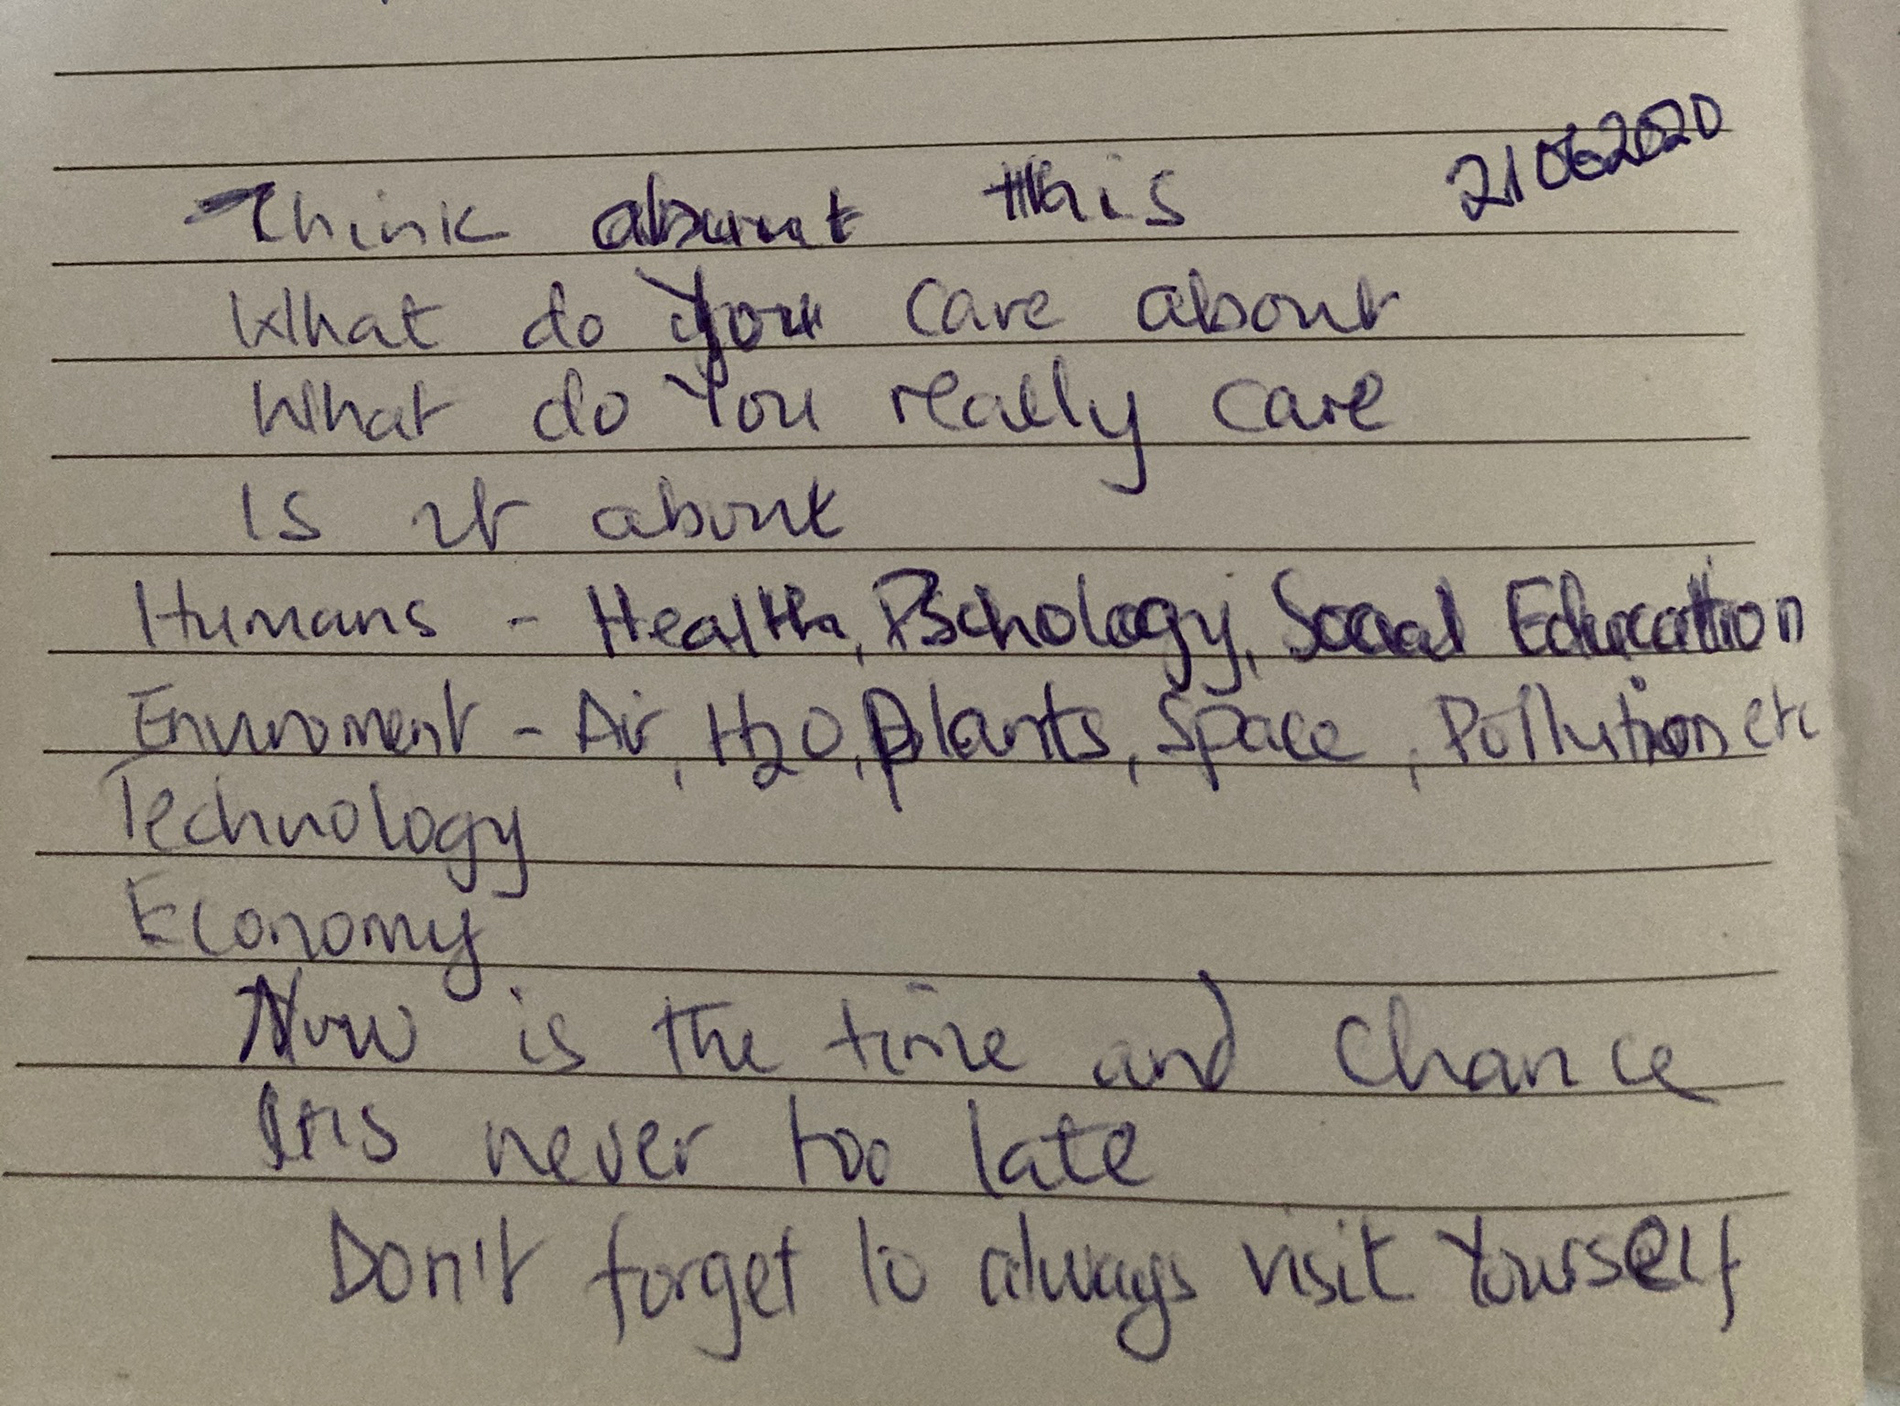 Photo of hand-written diary entry by Vicky